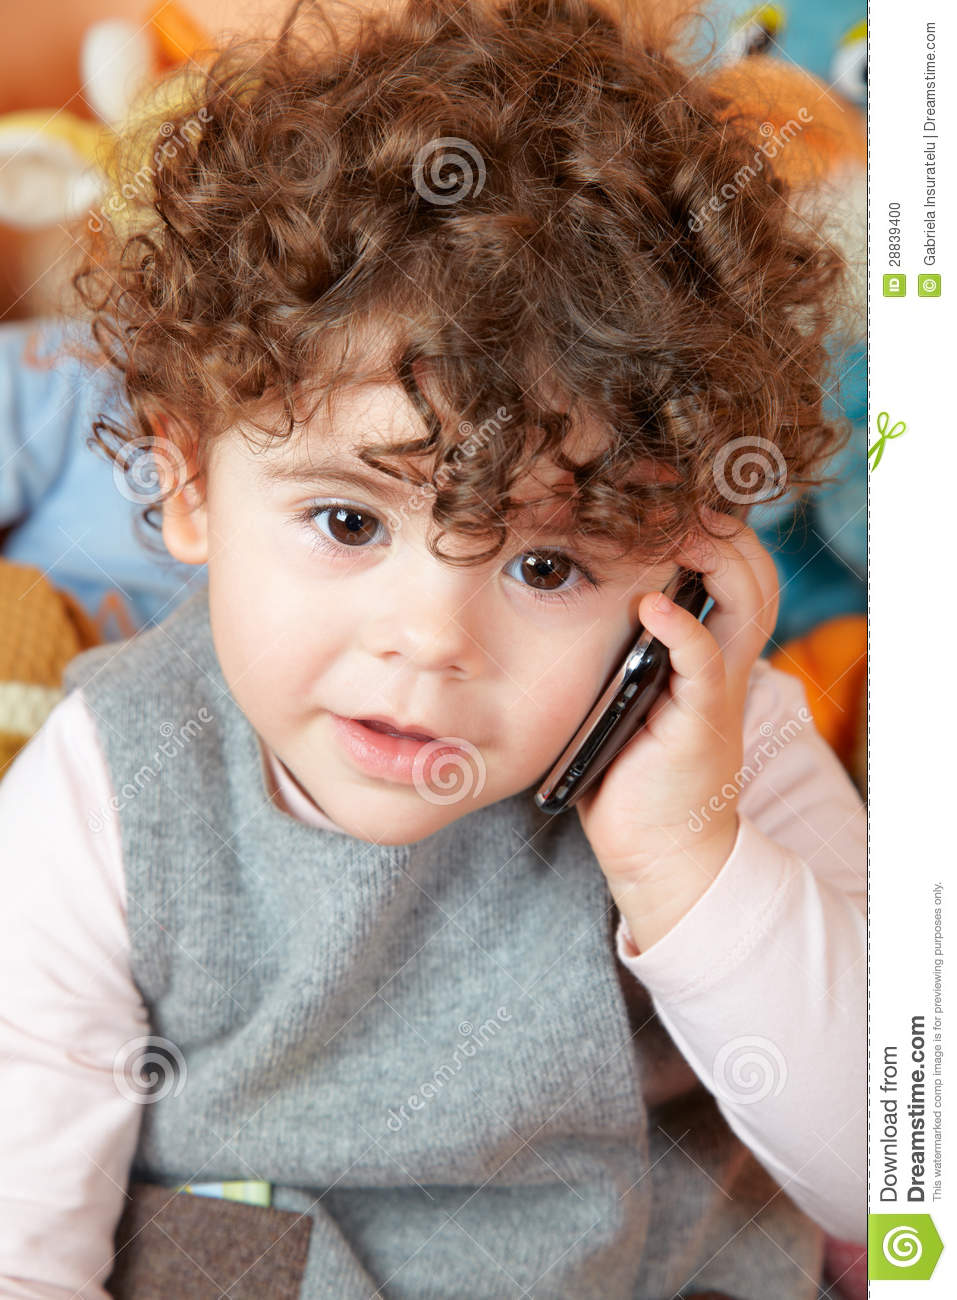 Baby Girl Talking On Phone Stock Photo Image Of Cell